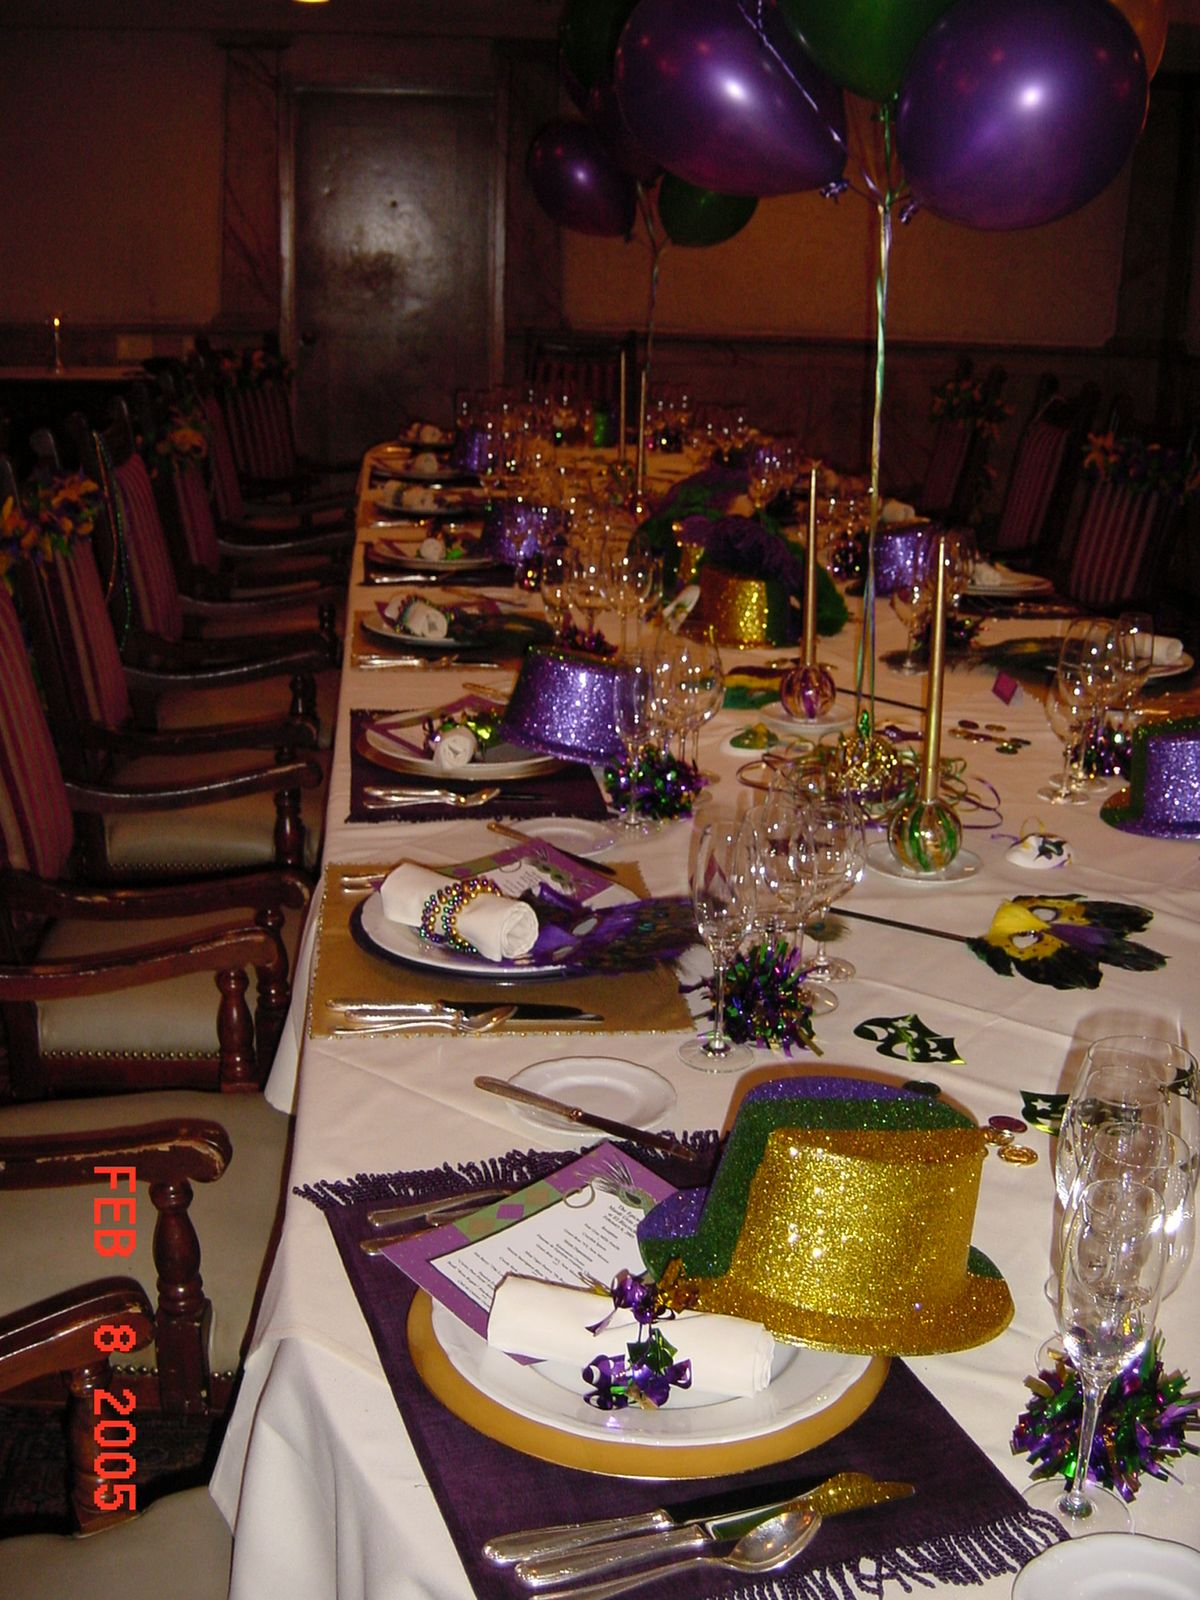 Mardi Gras party at the RBI Can Do This For New Year's Eve ...